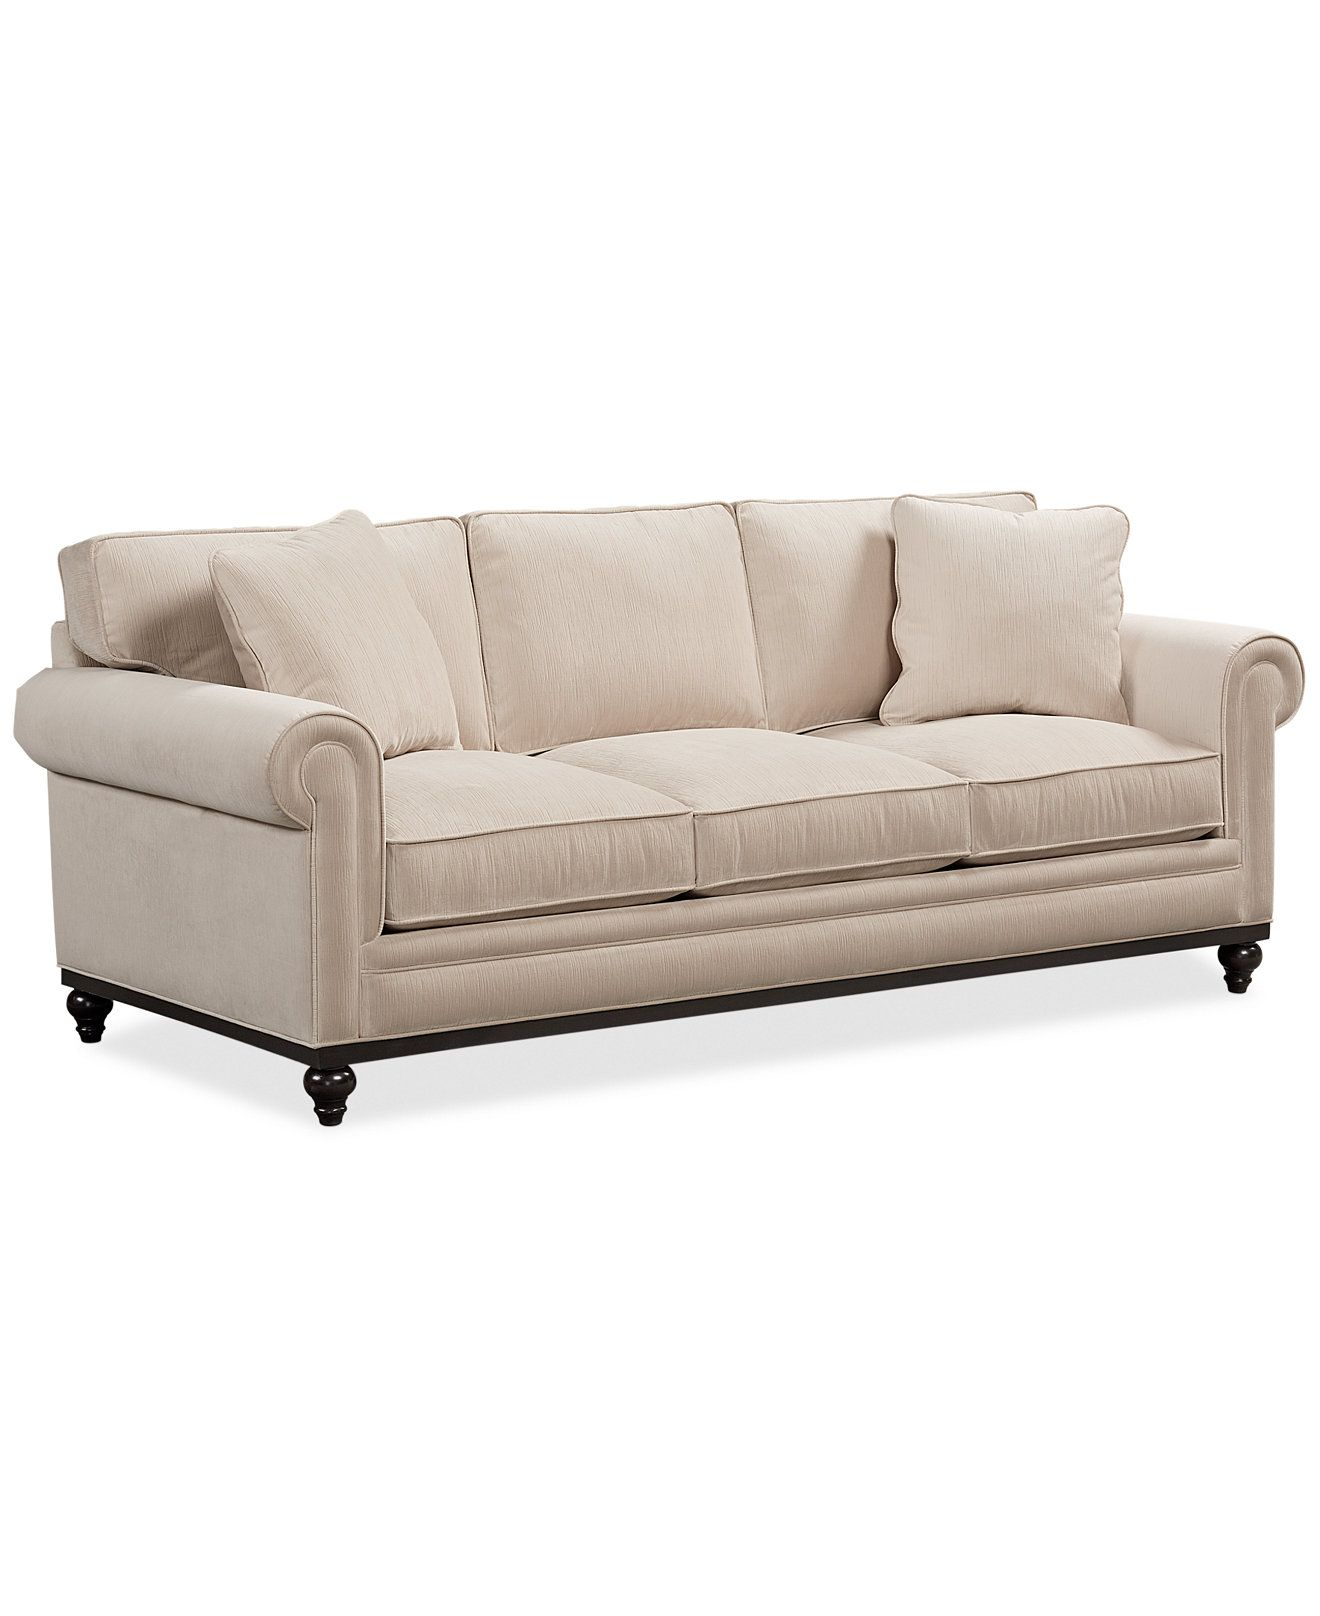 martha stewart collection new club fabric roll arm sofa - couches